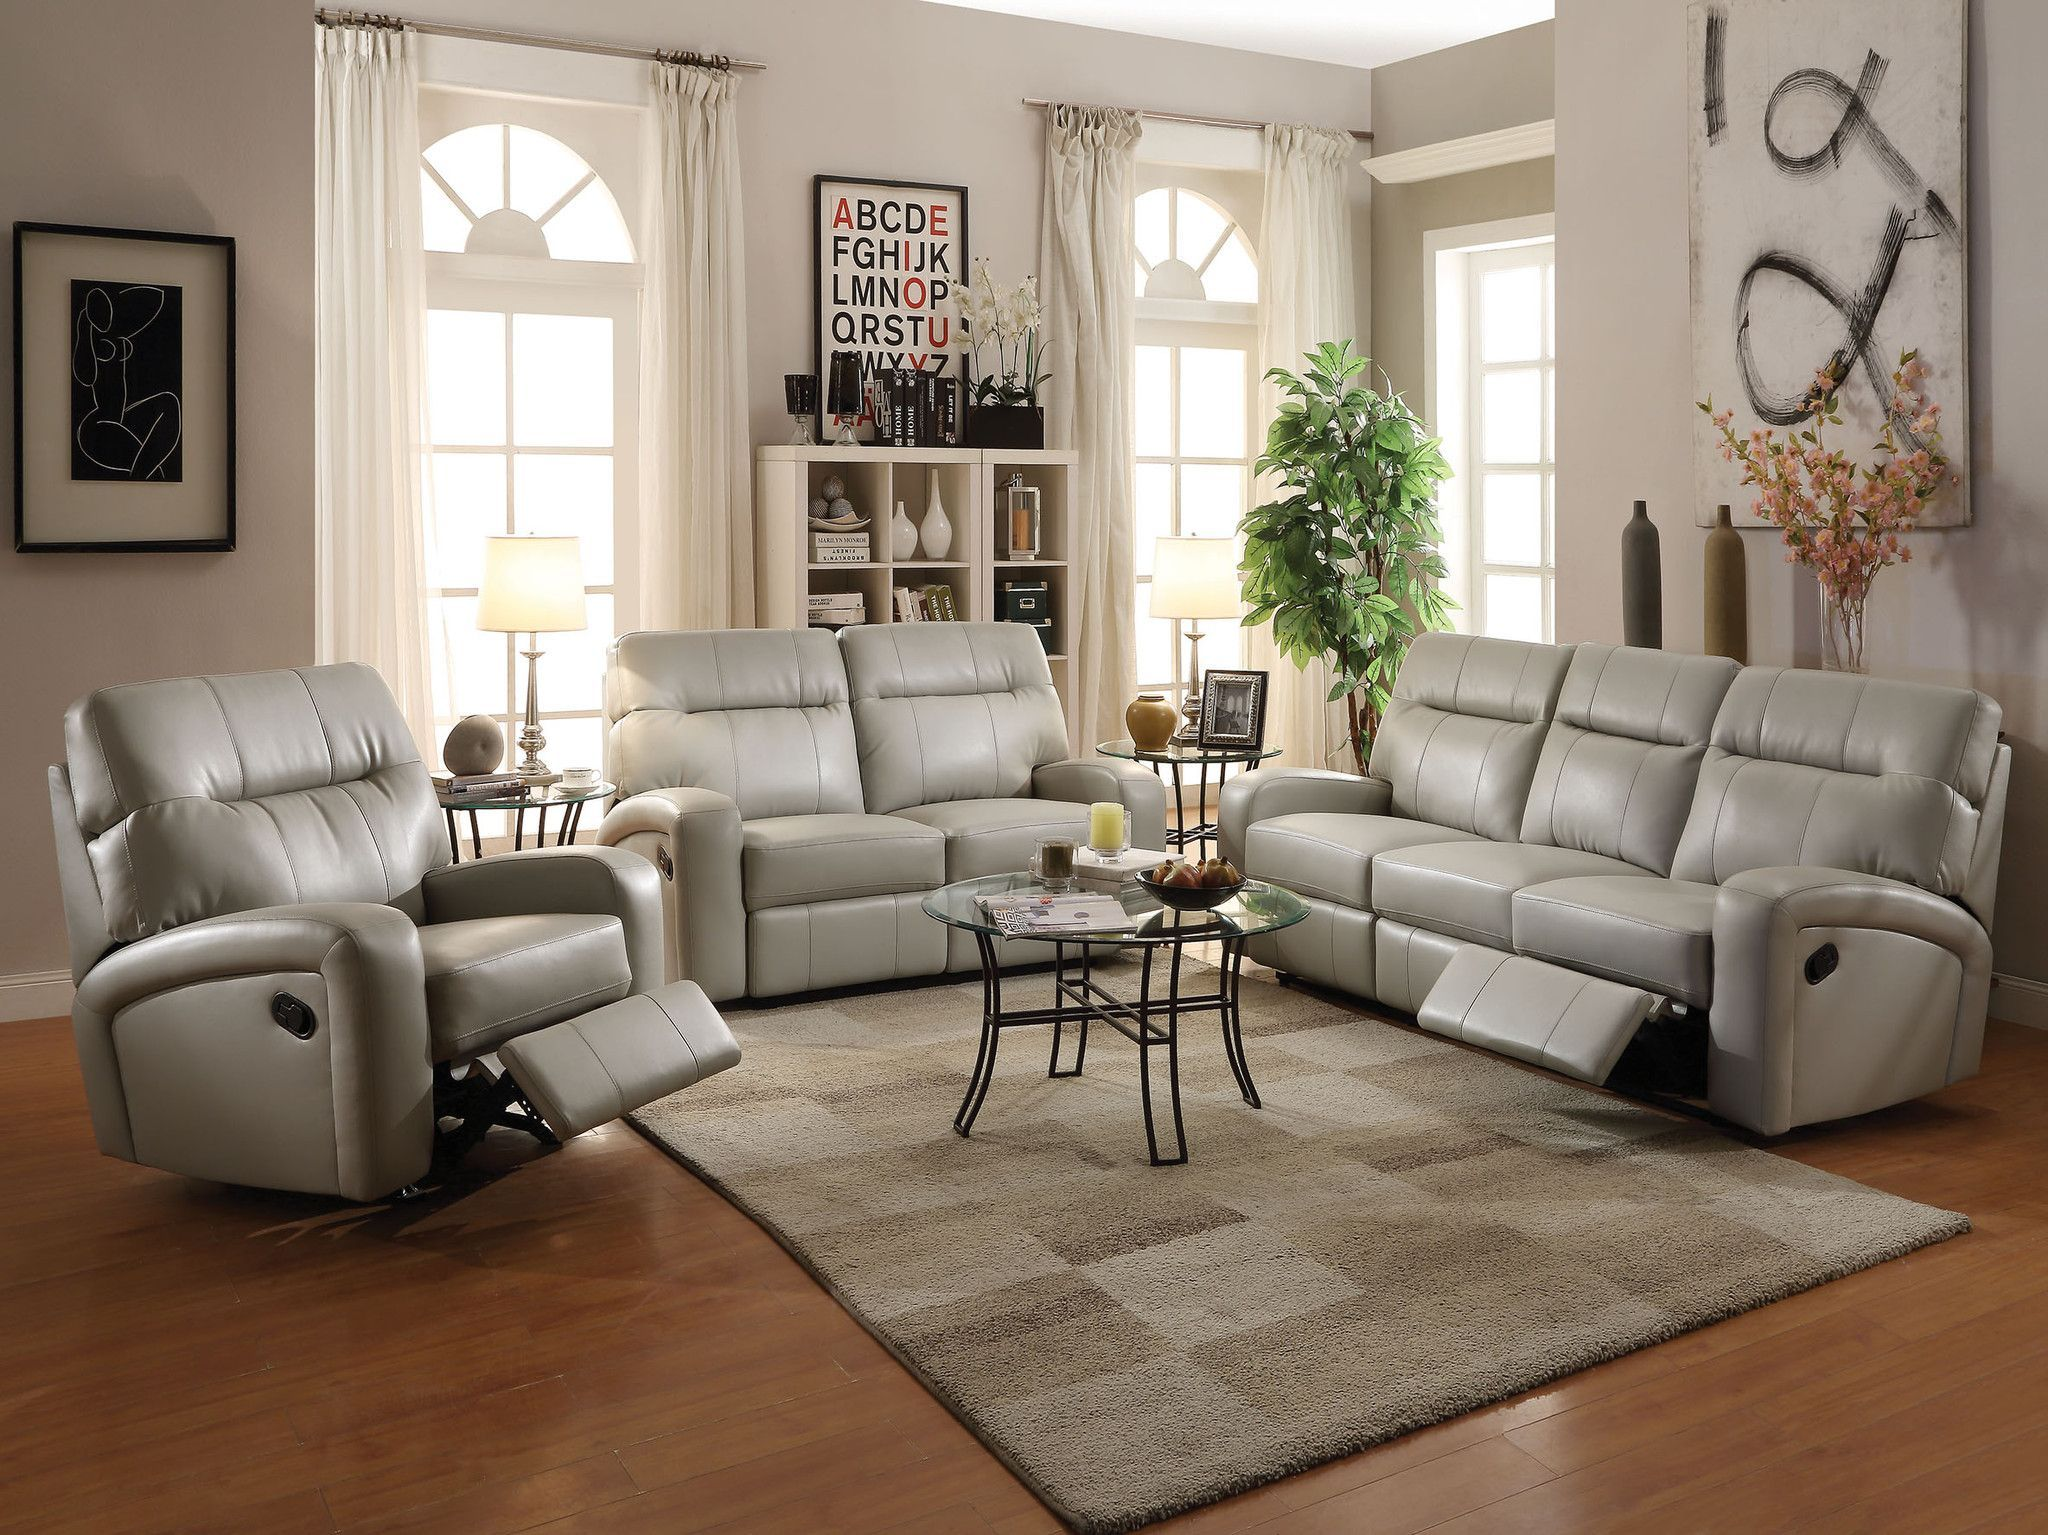 Acme Furniture Nailah 3 Piece Living Room Set in Chocolate